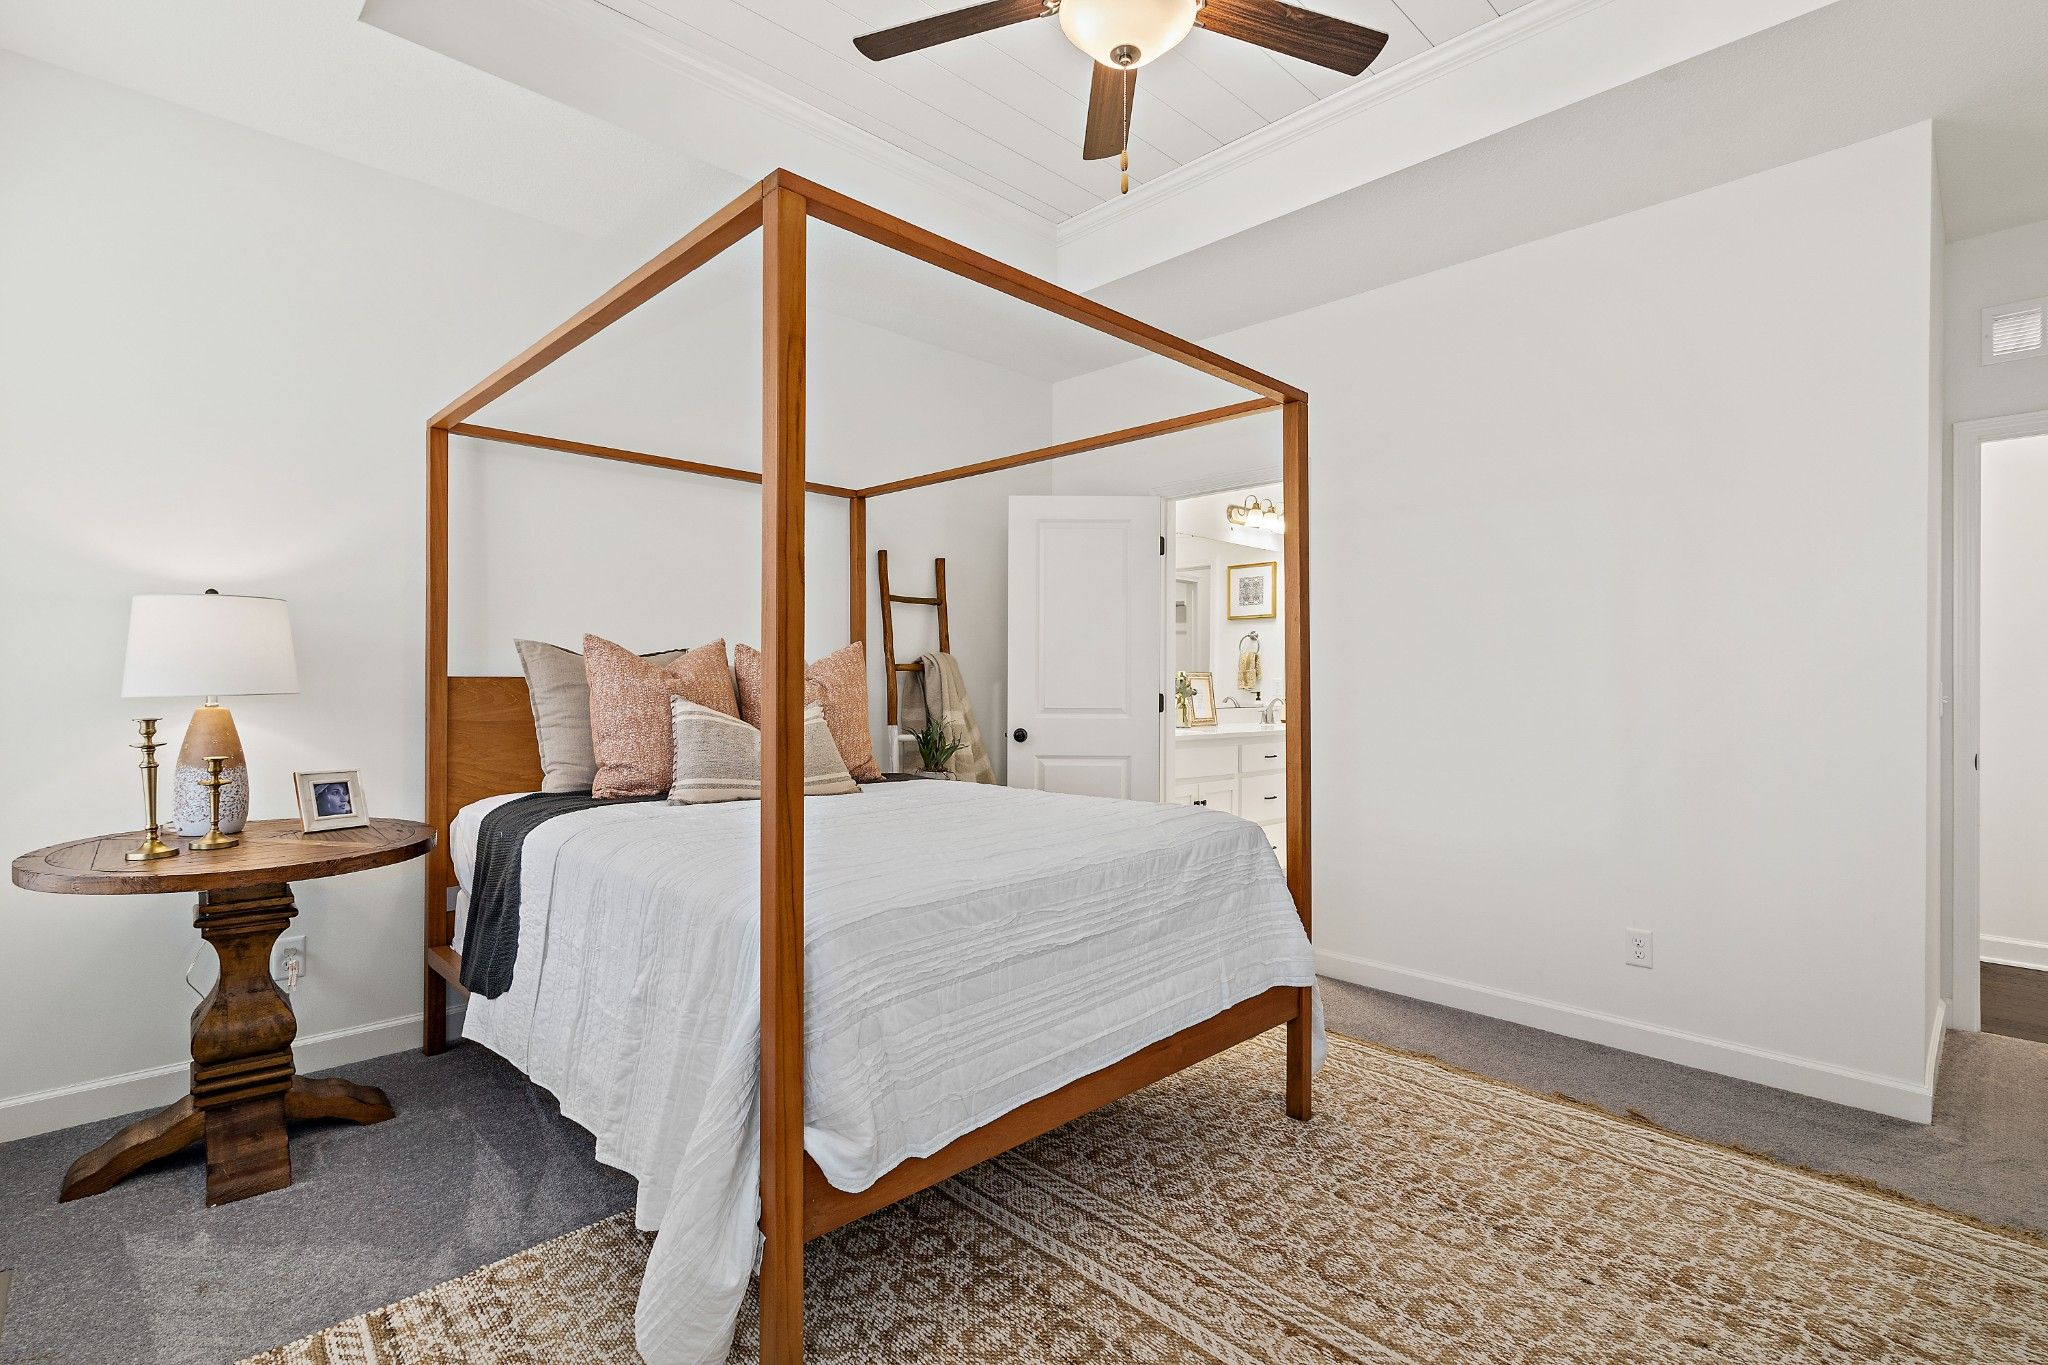 Bedroom featured in the Carbondale - IA By Summit Homes in Des Moines, IA